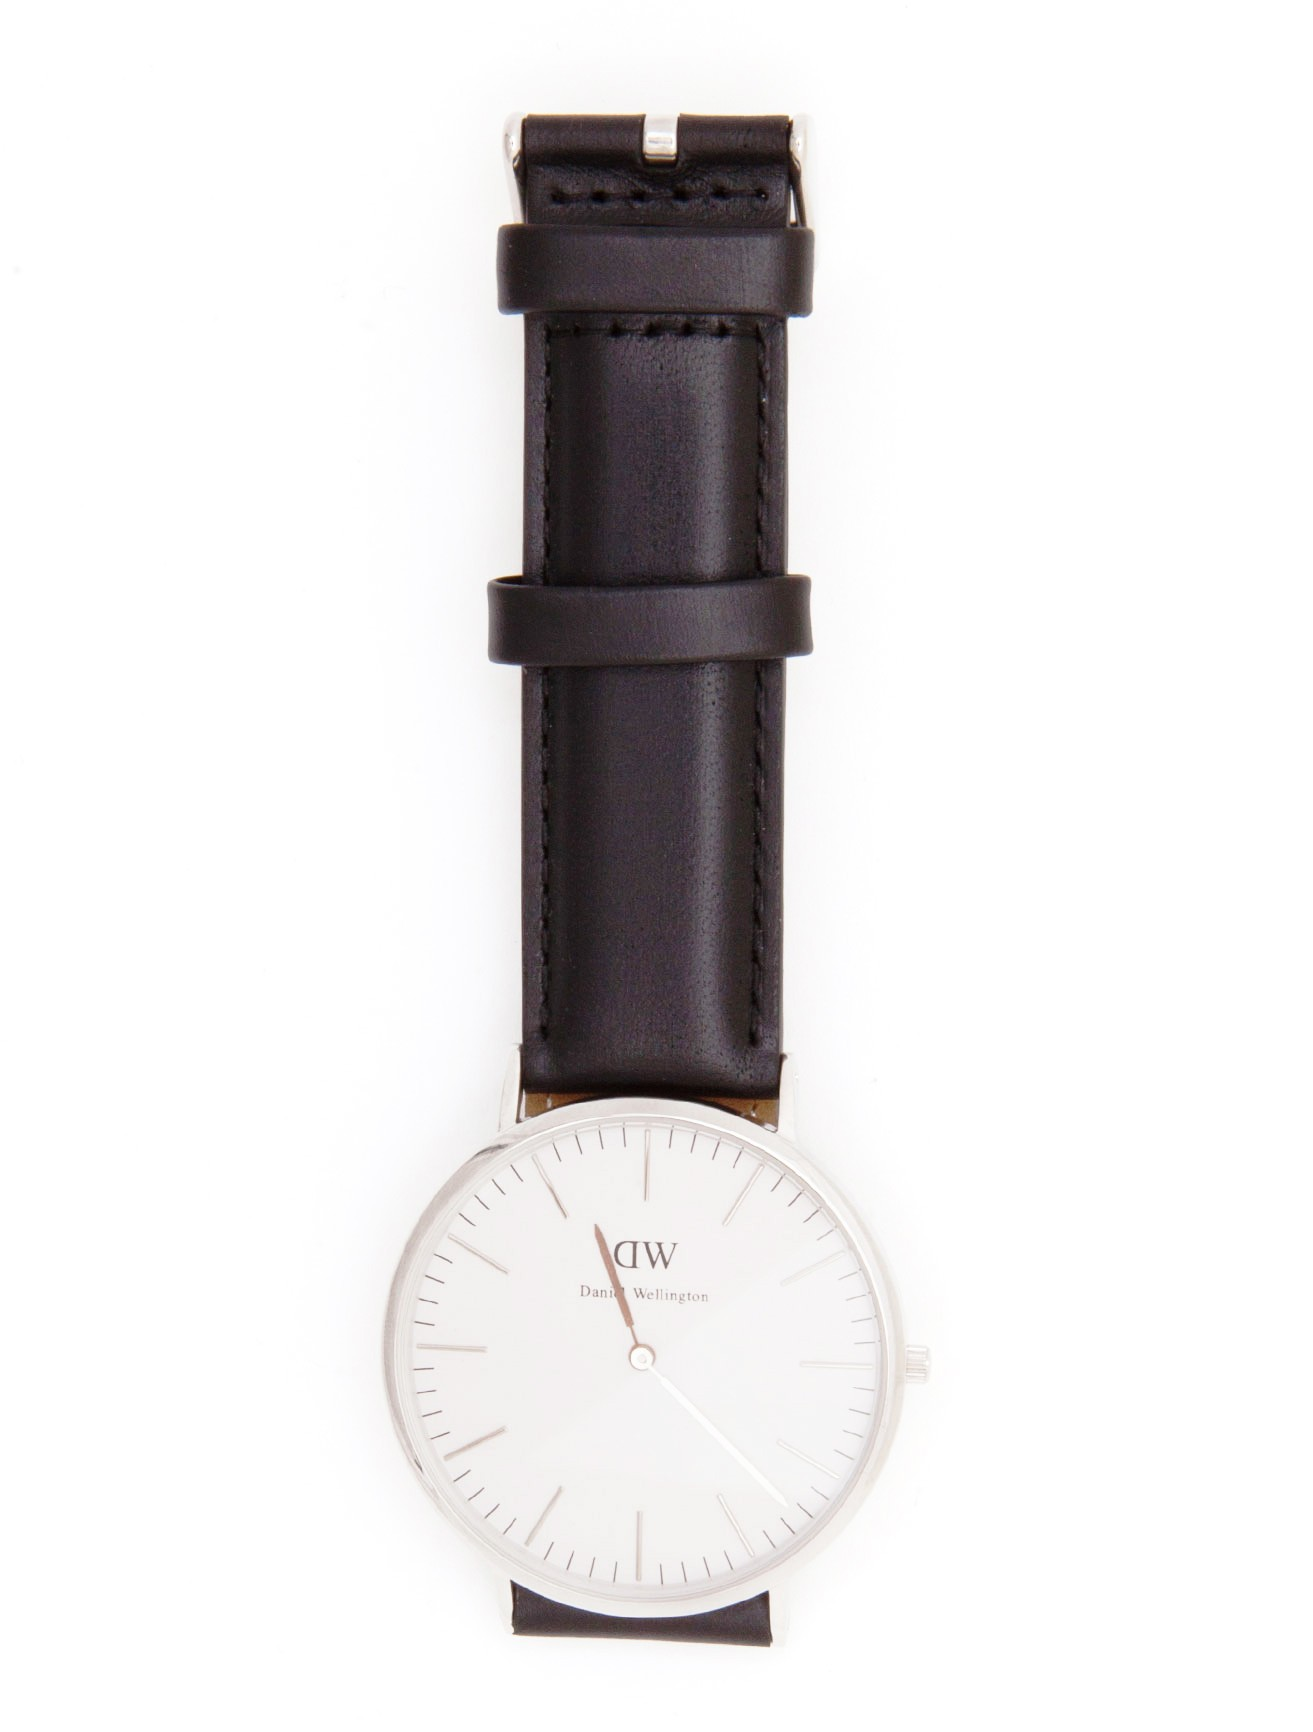 daniel wellington silver faced watch with black leather. Black Bedroom Furniture Sets. Home Design Ideas